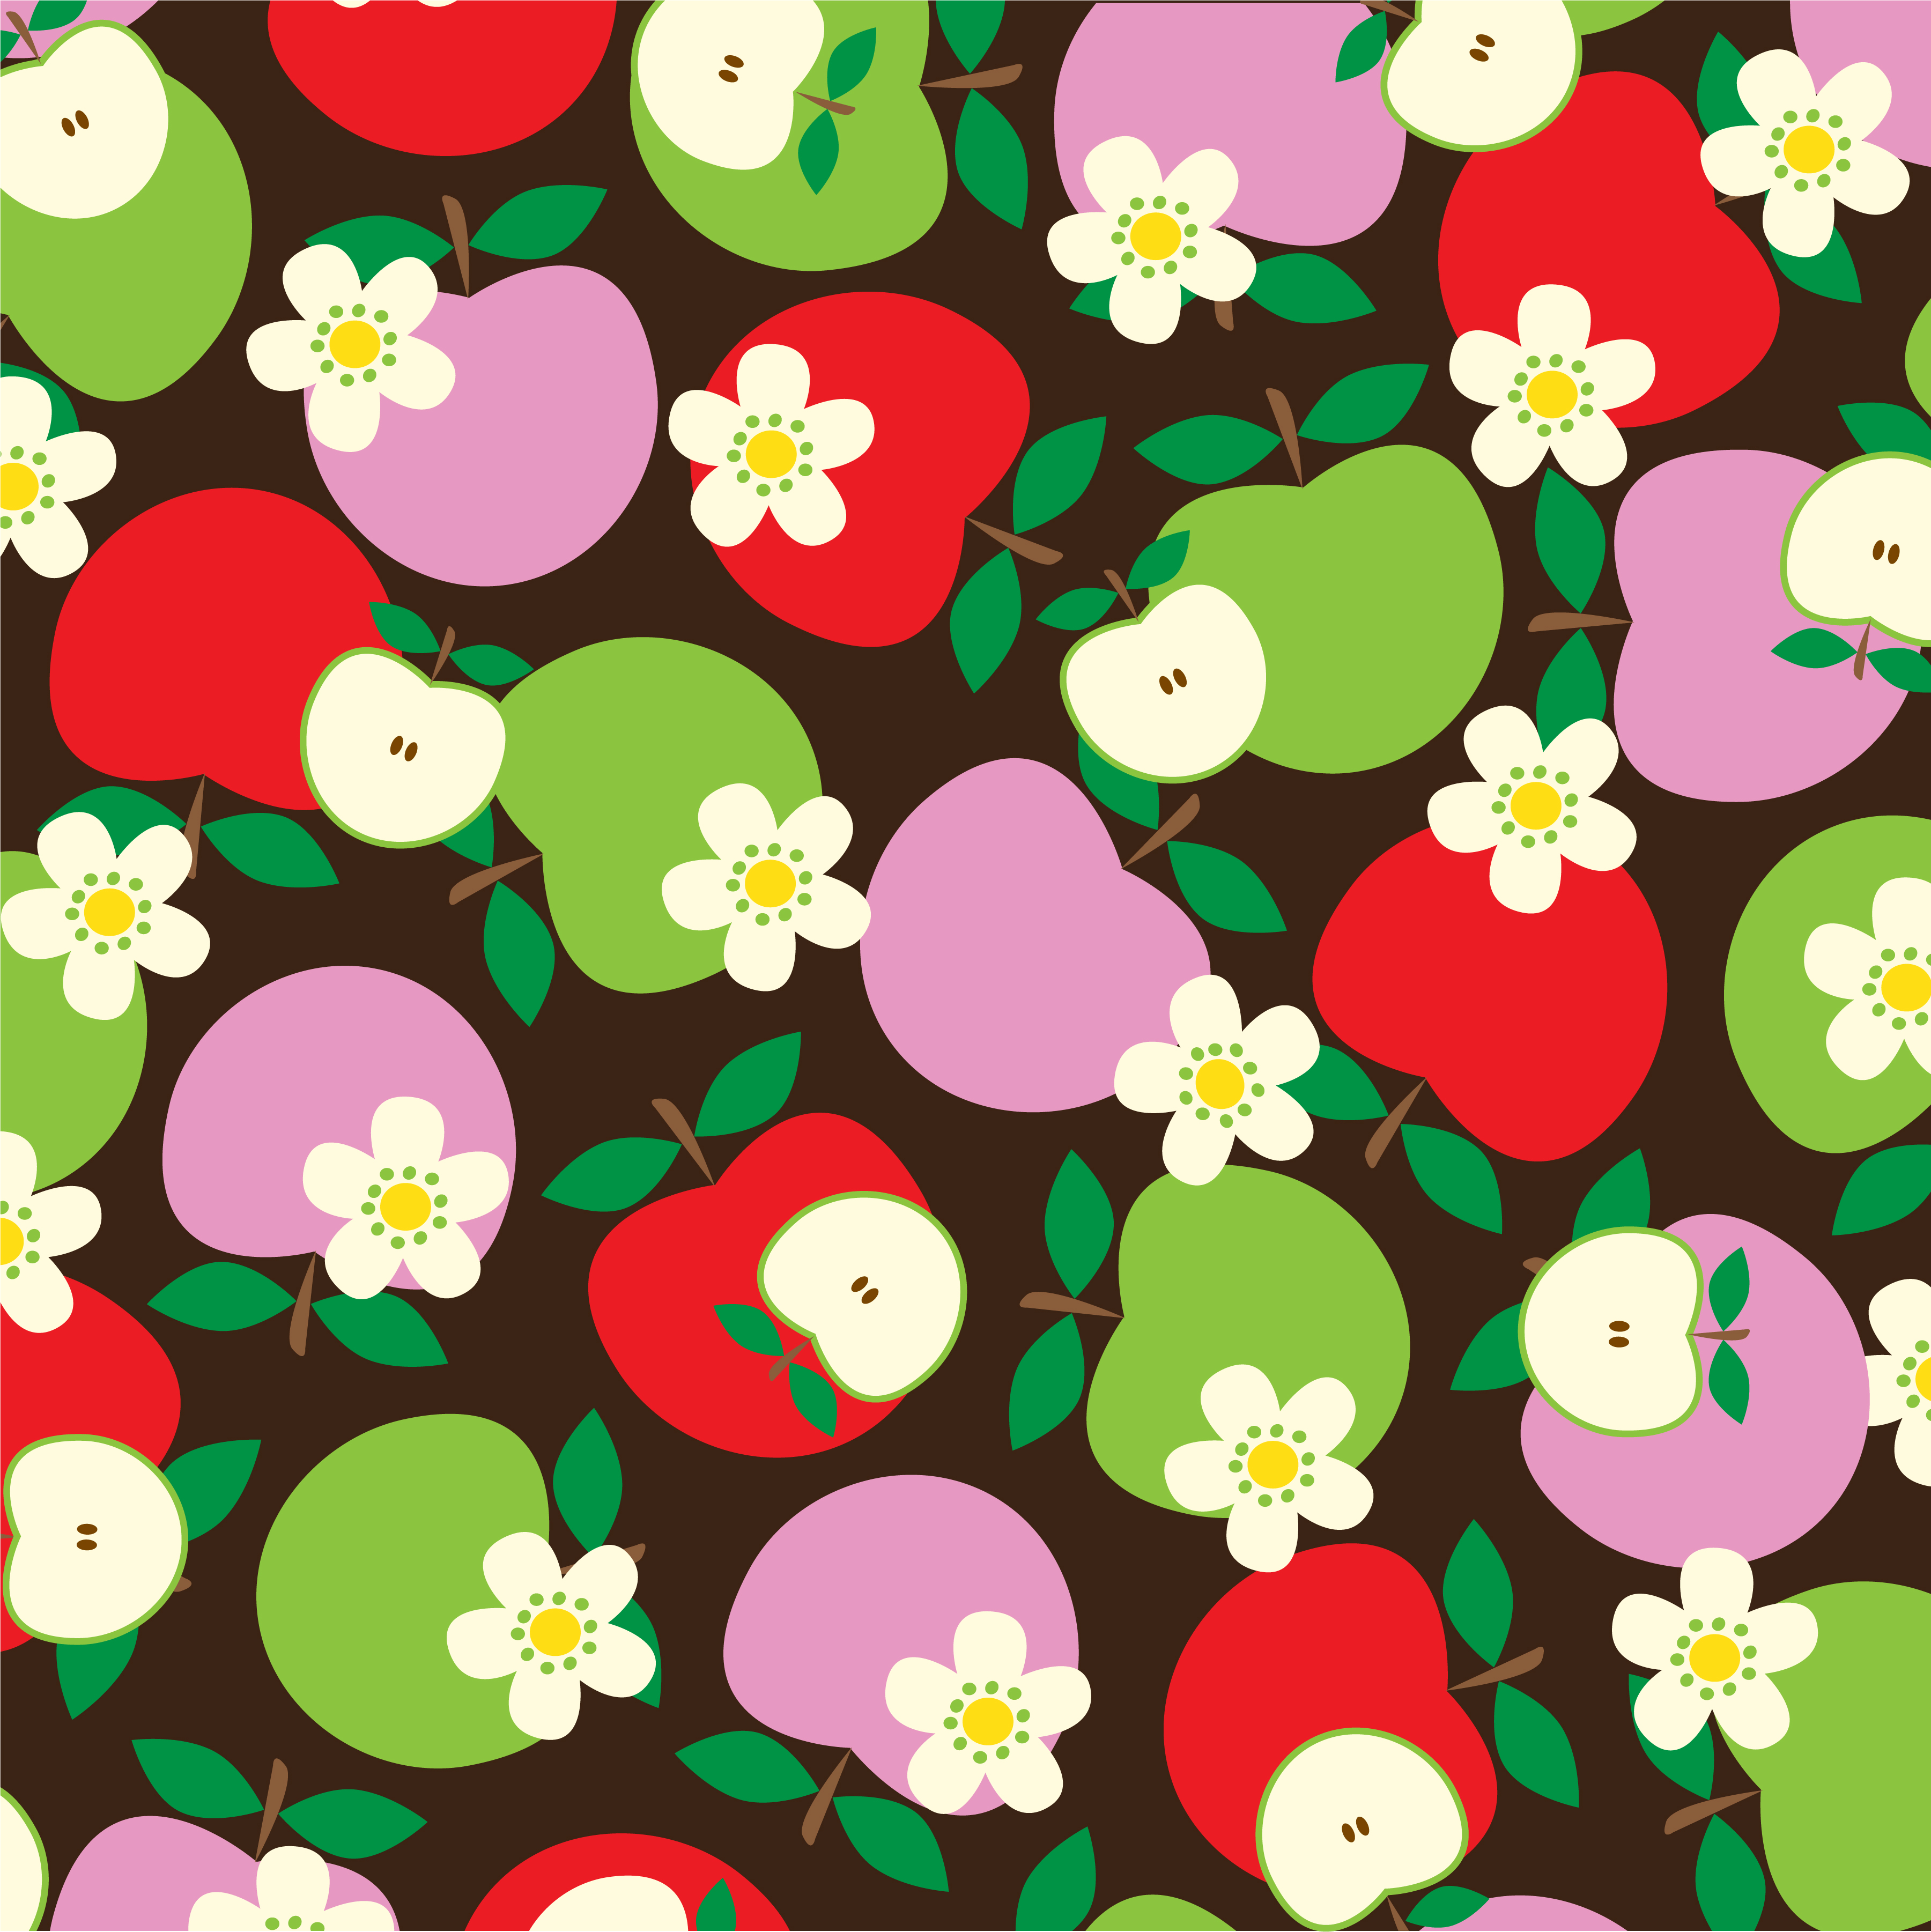 Overlapping Apple And Flower Pattern On Brown Background